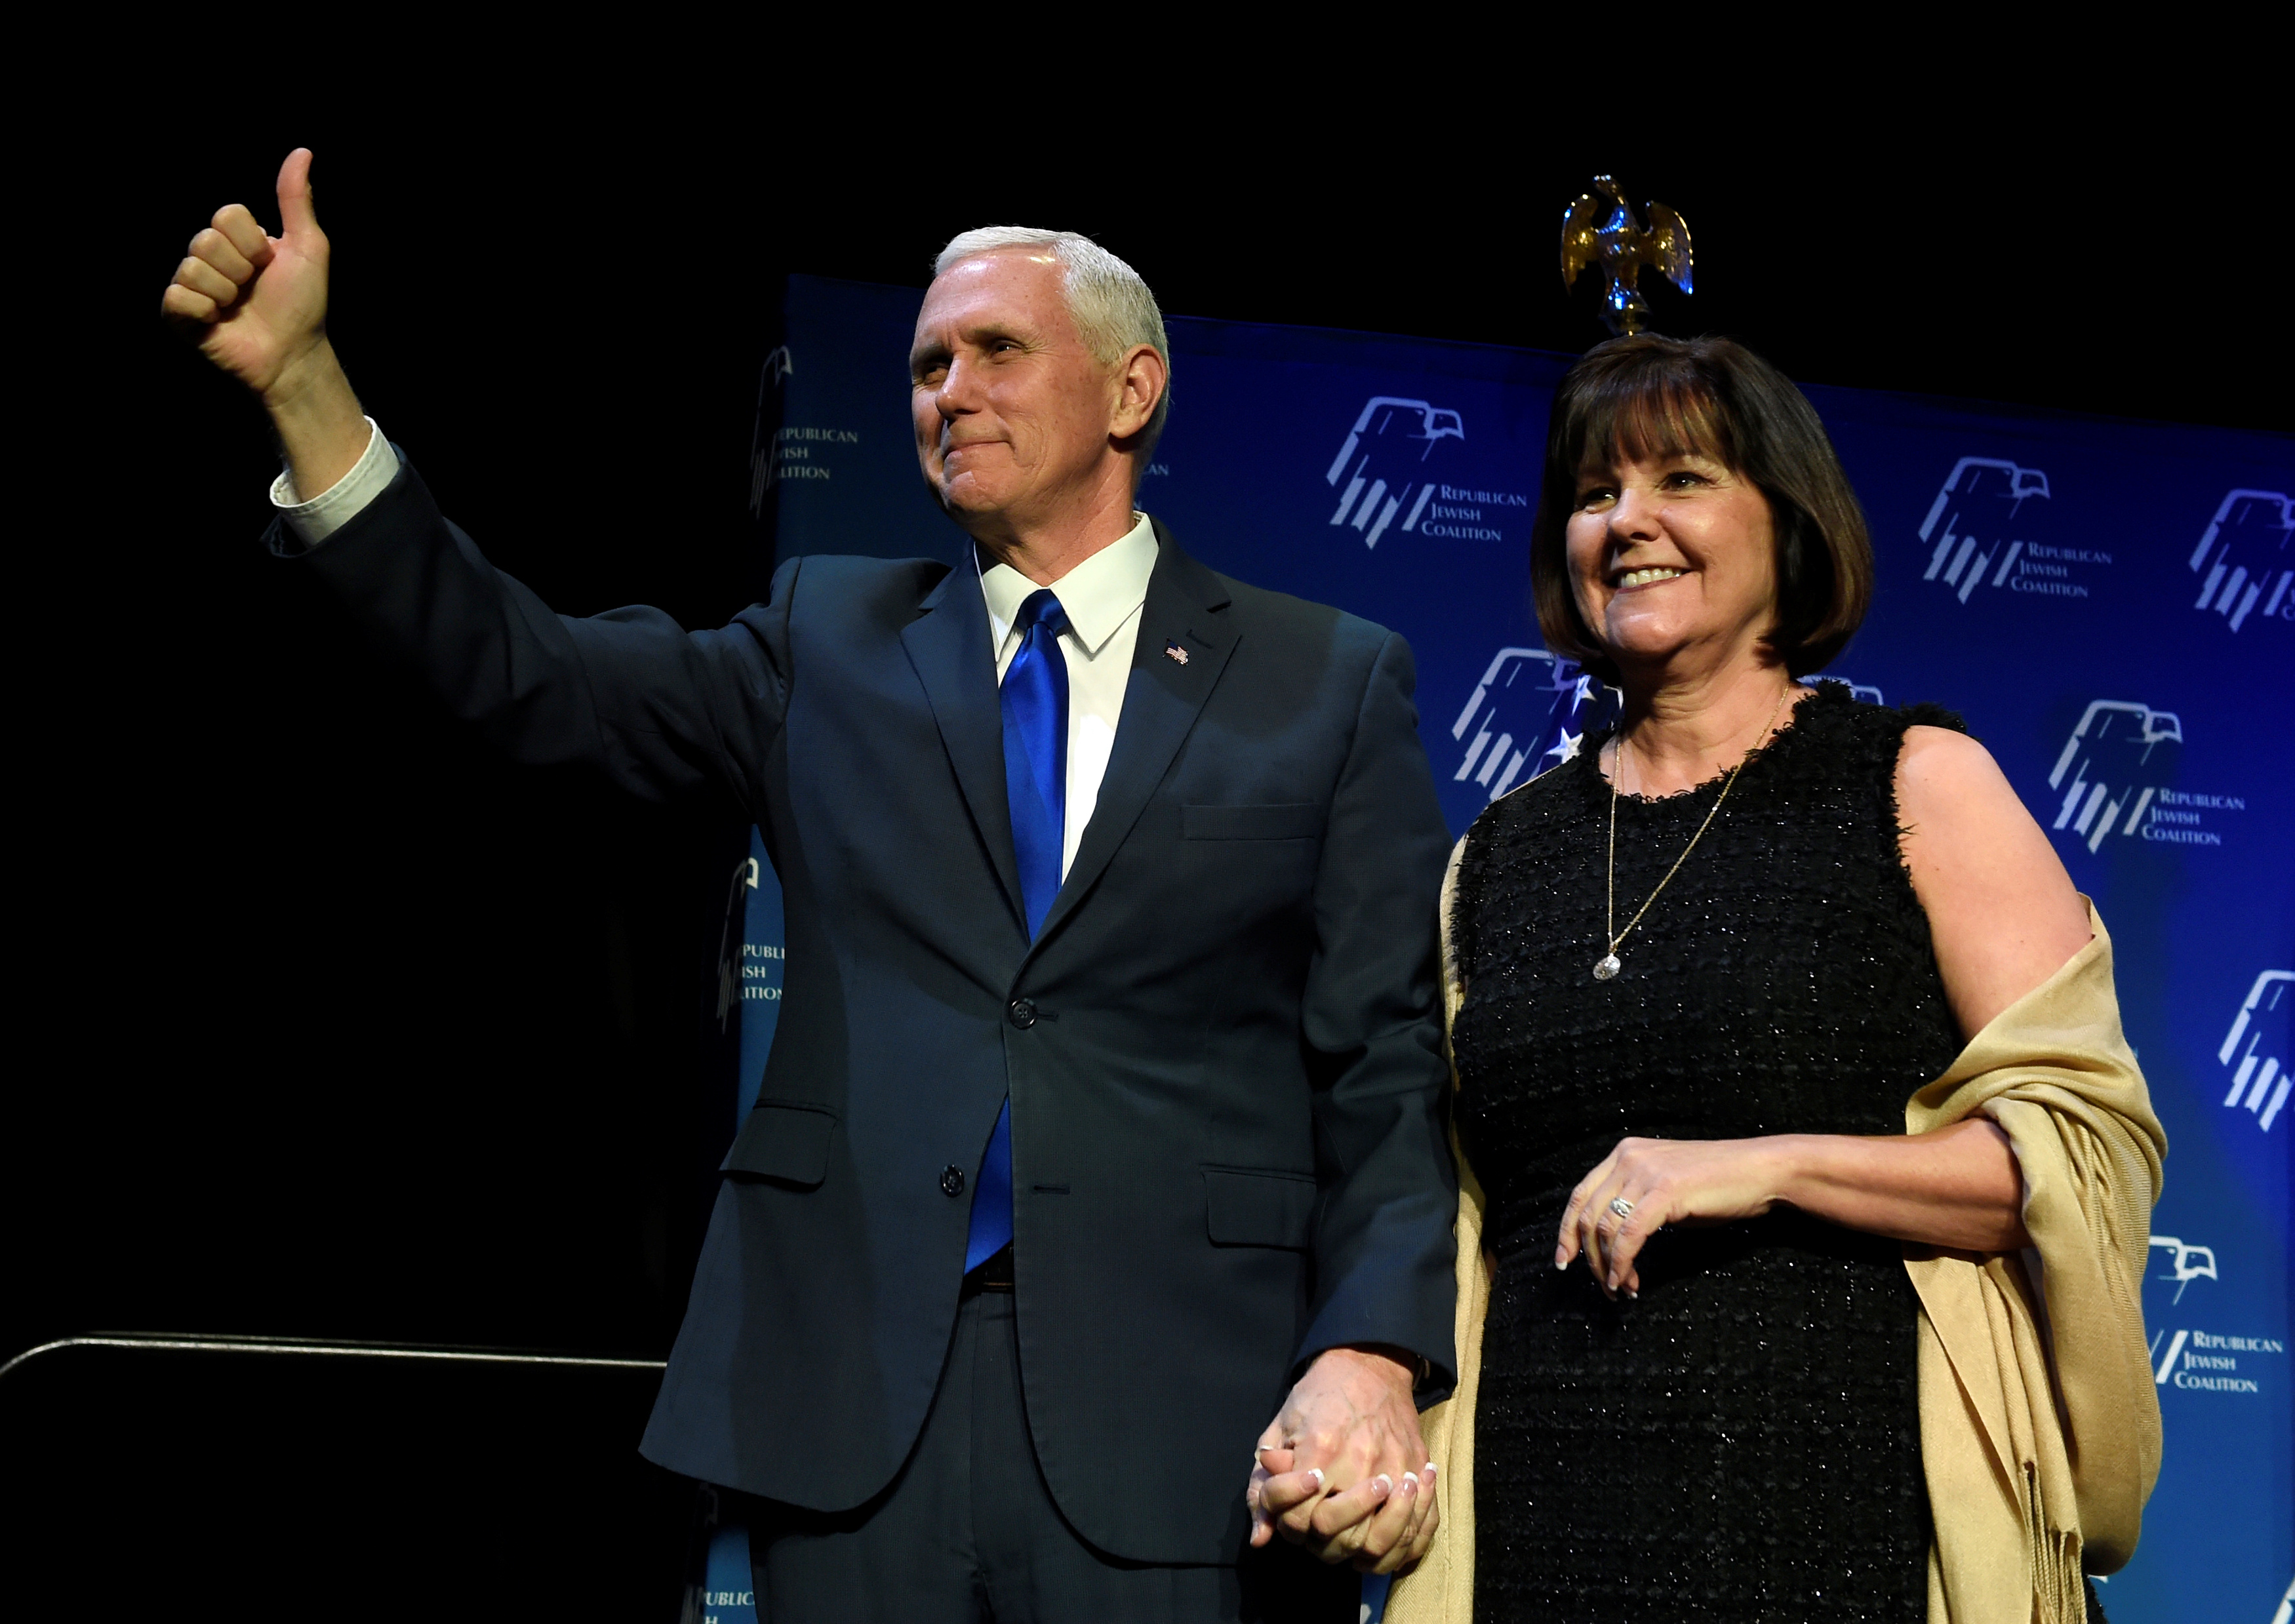 U.S. Vice President Mike Pence, left, and his wife, Karen Pence acknowledge the audience before he speaks at the Republican Jewish Coalition's annual meeting in Las Vegas